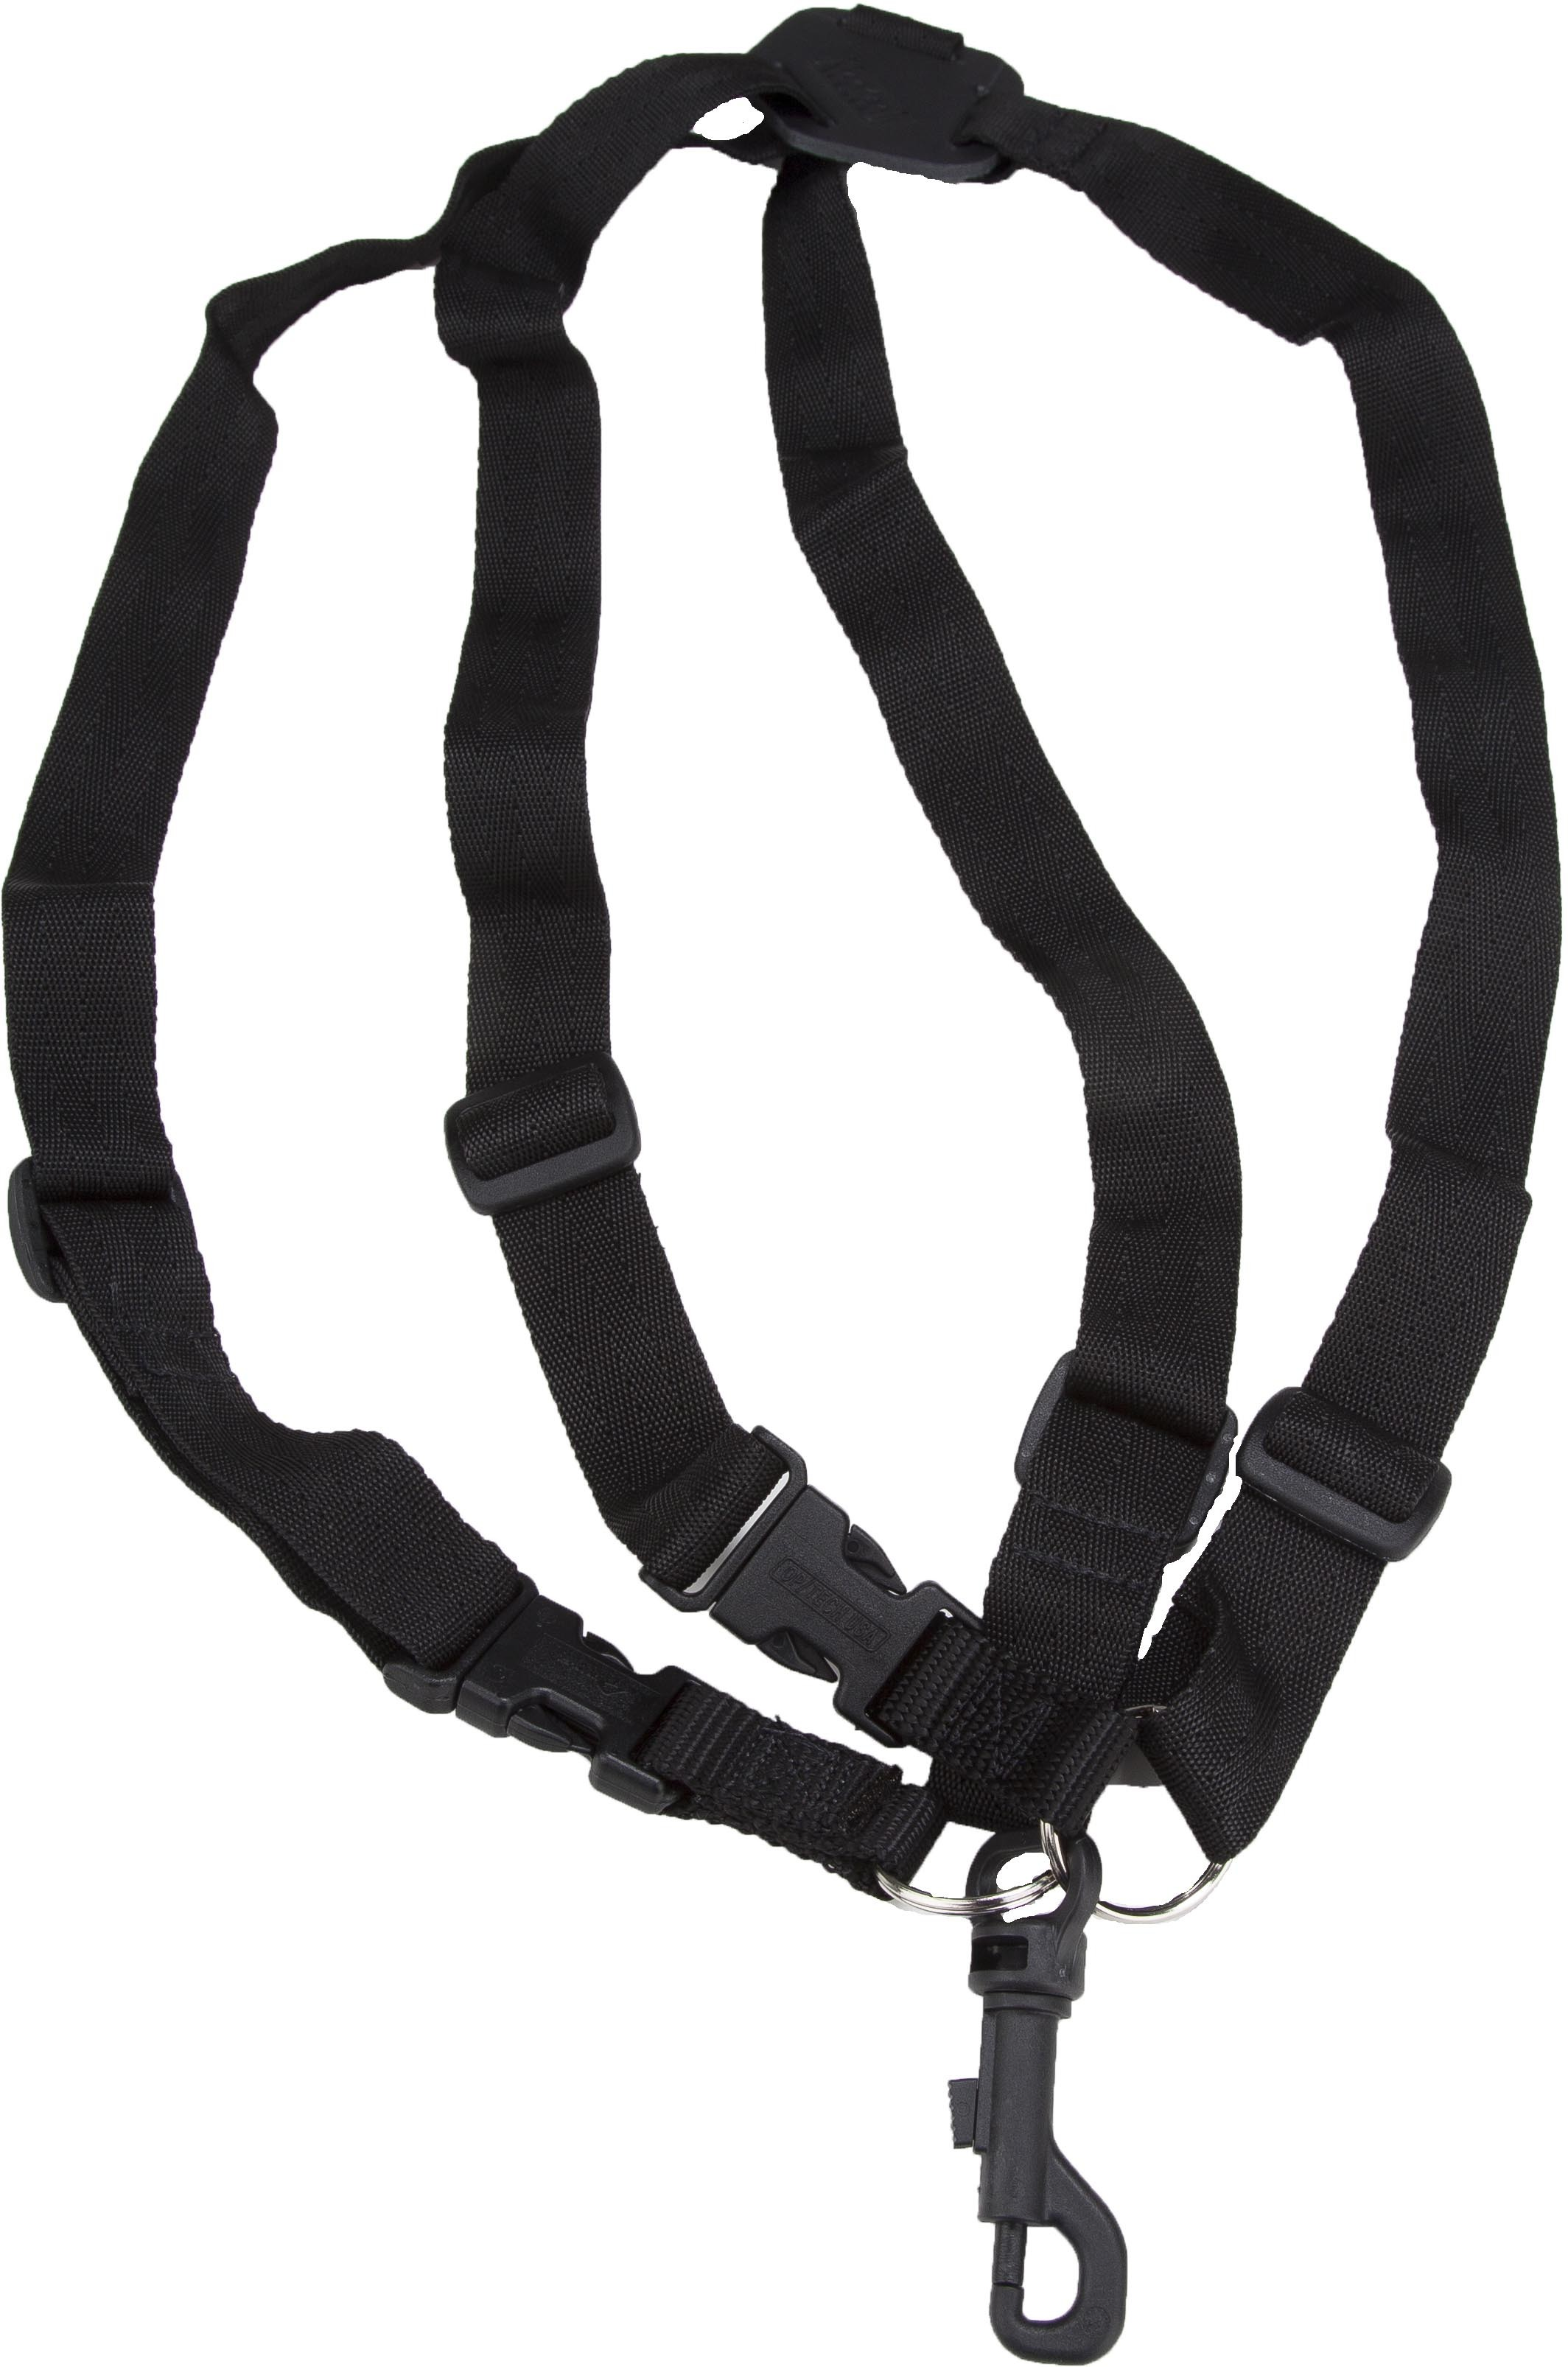 Faxx Sax Harness - Swivel Hook